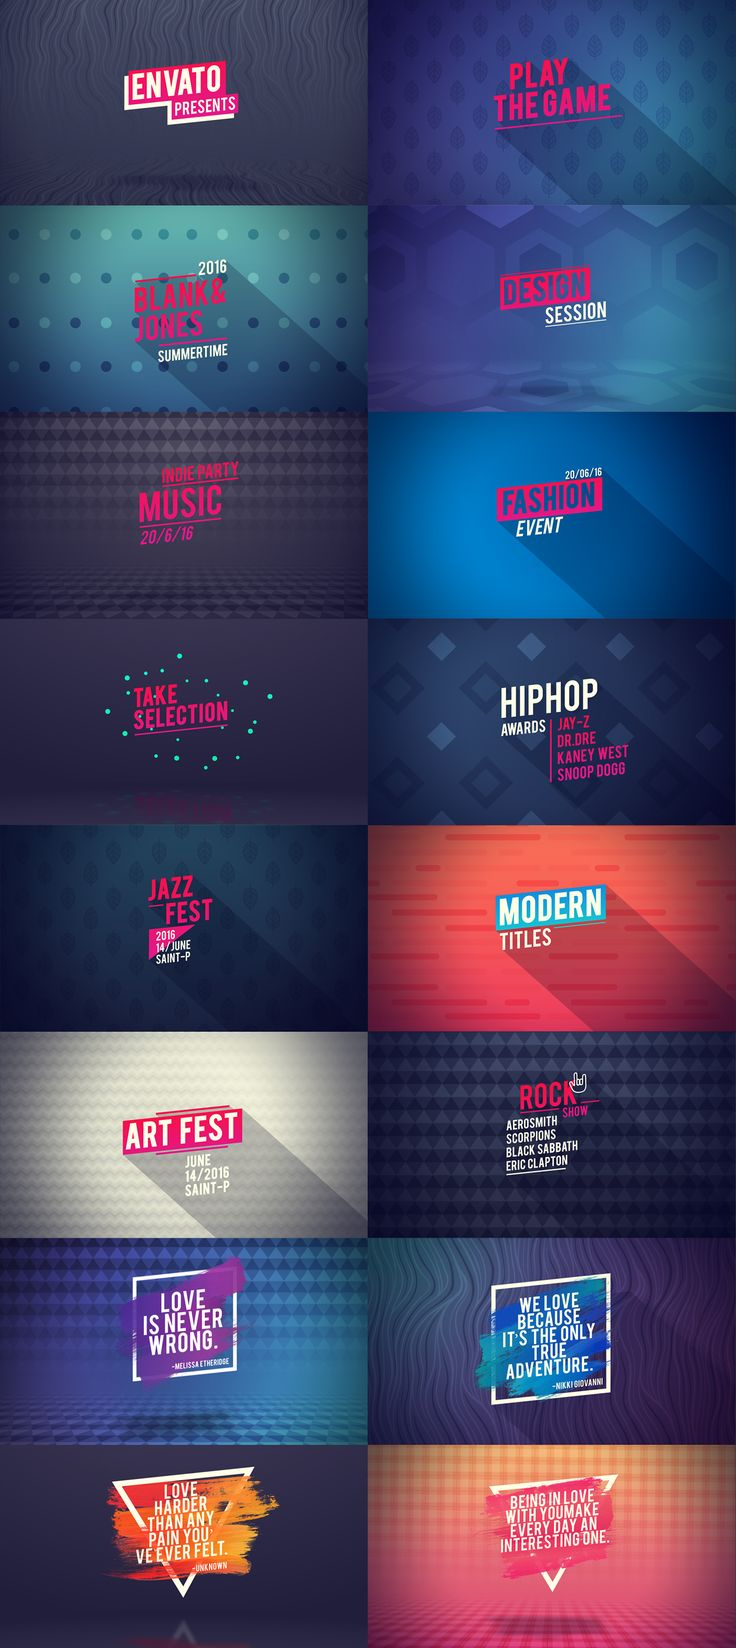 Ultimate Titles Package on Behance